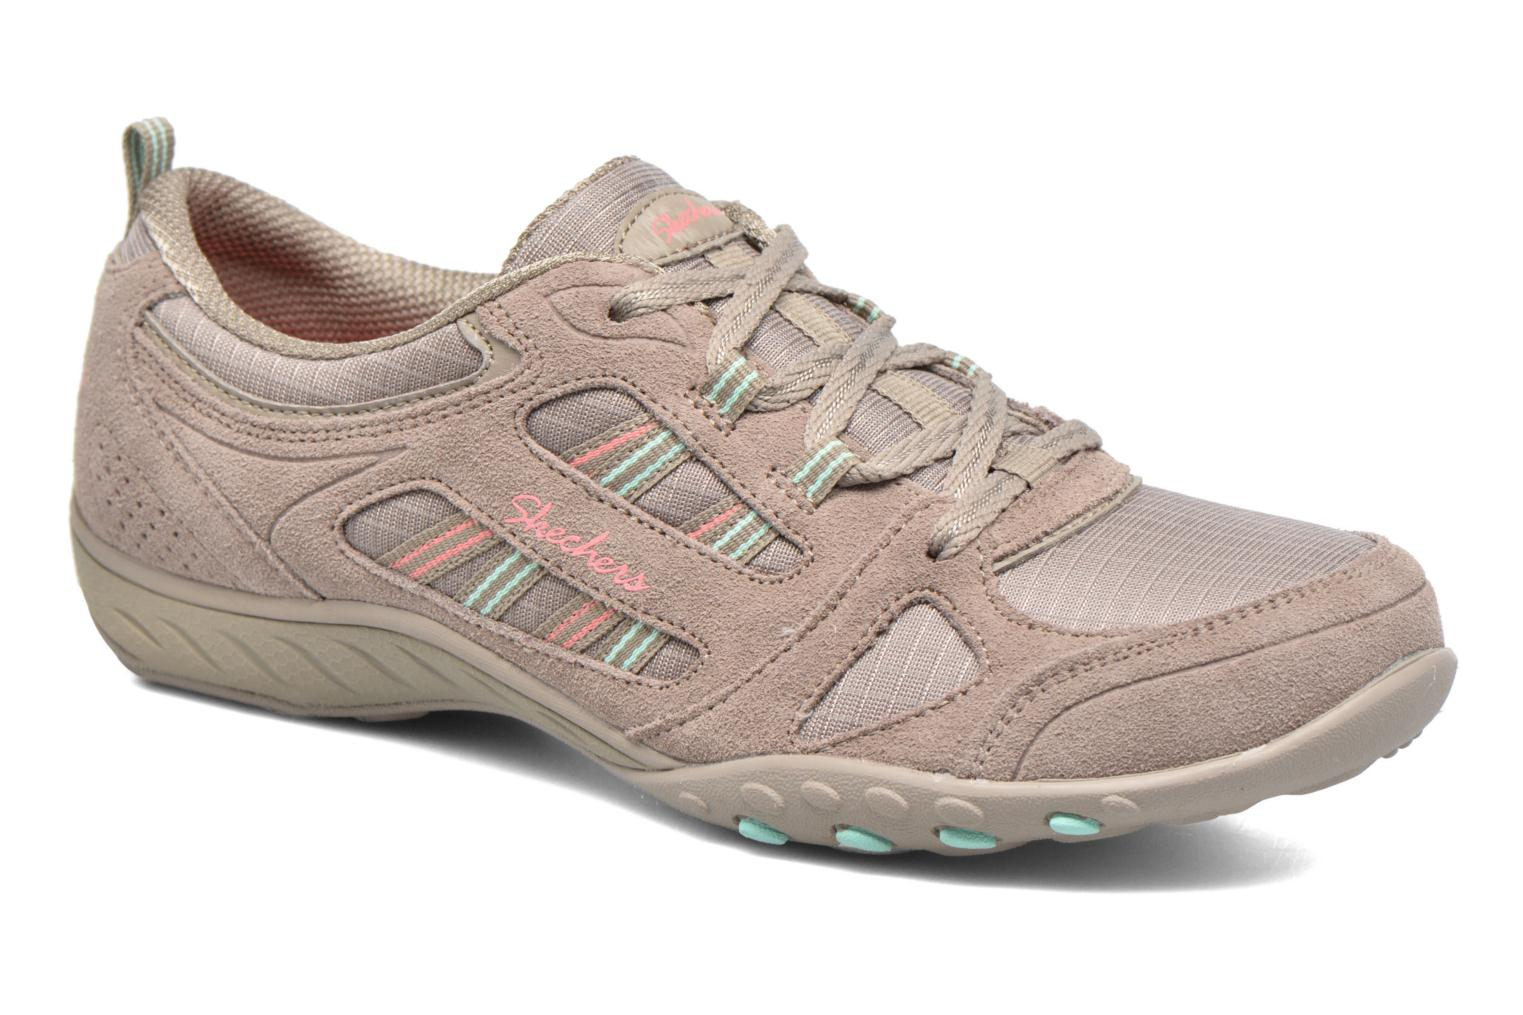 Deportivas Skechers Breathe-Easy - Good Gris vista de detalle / par